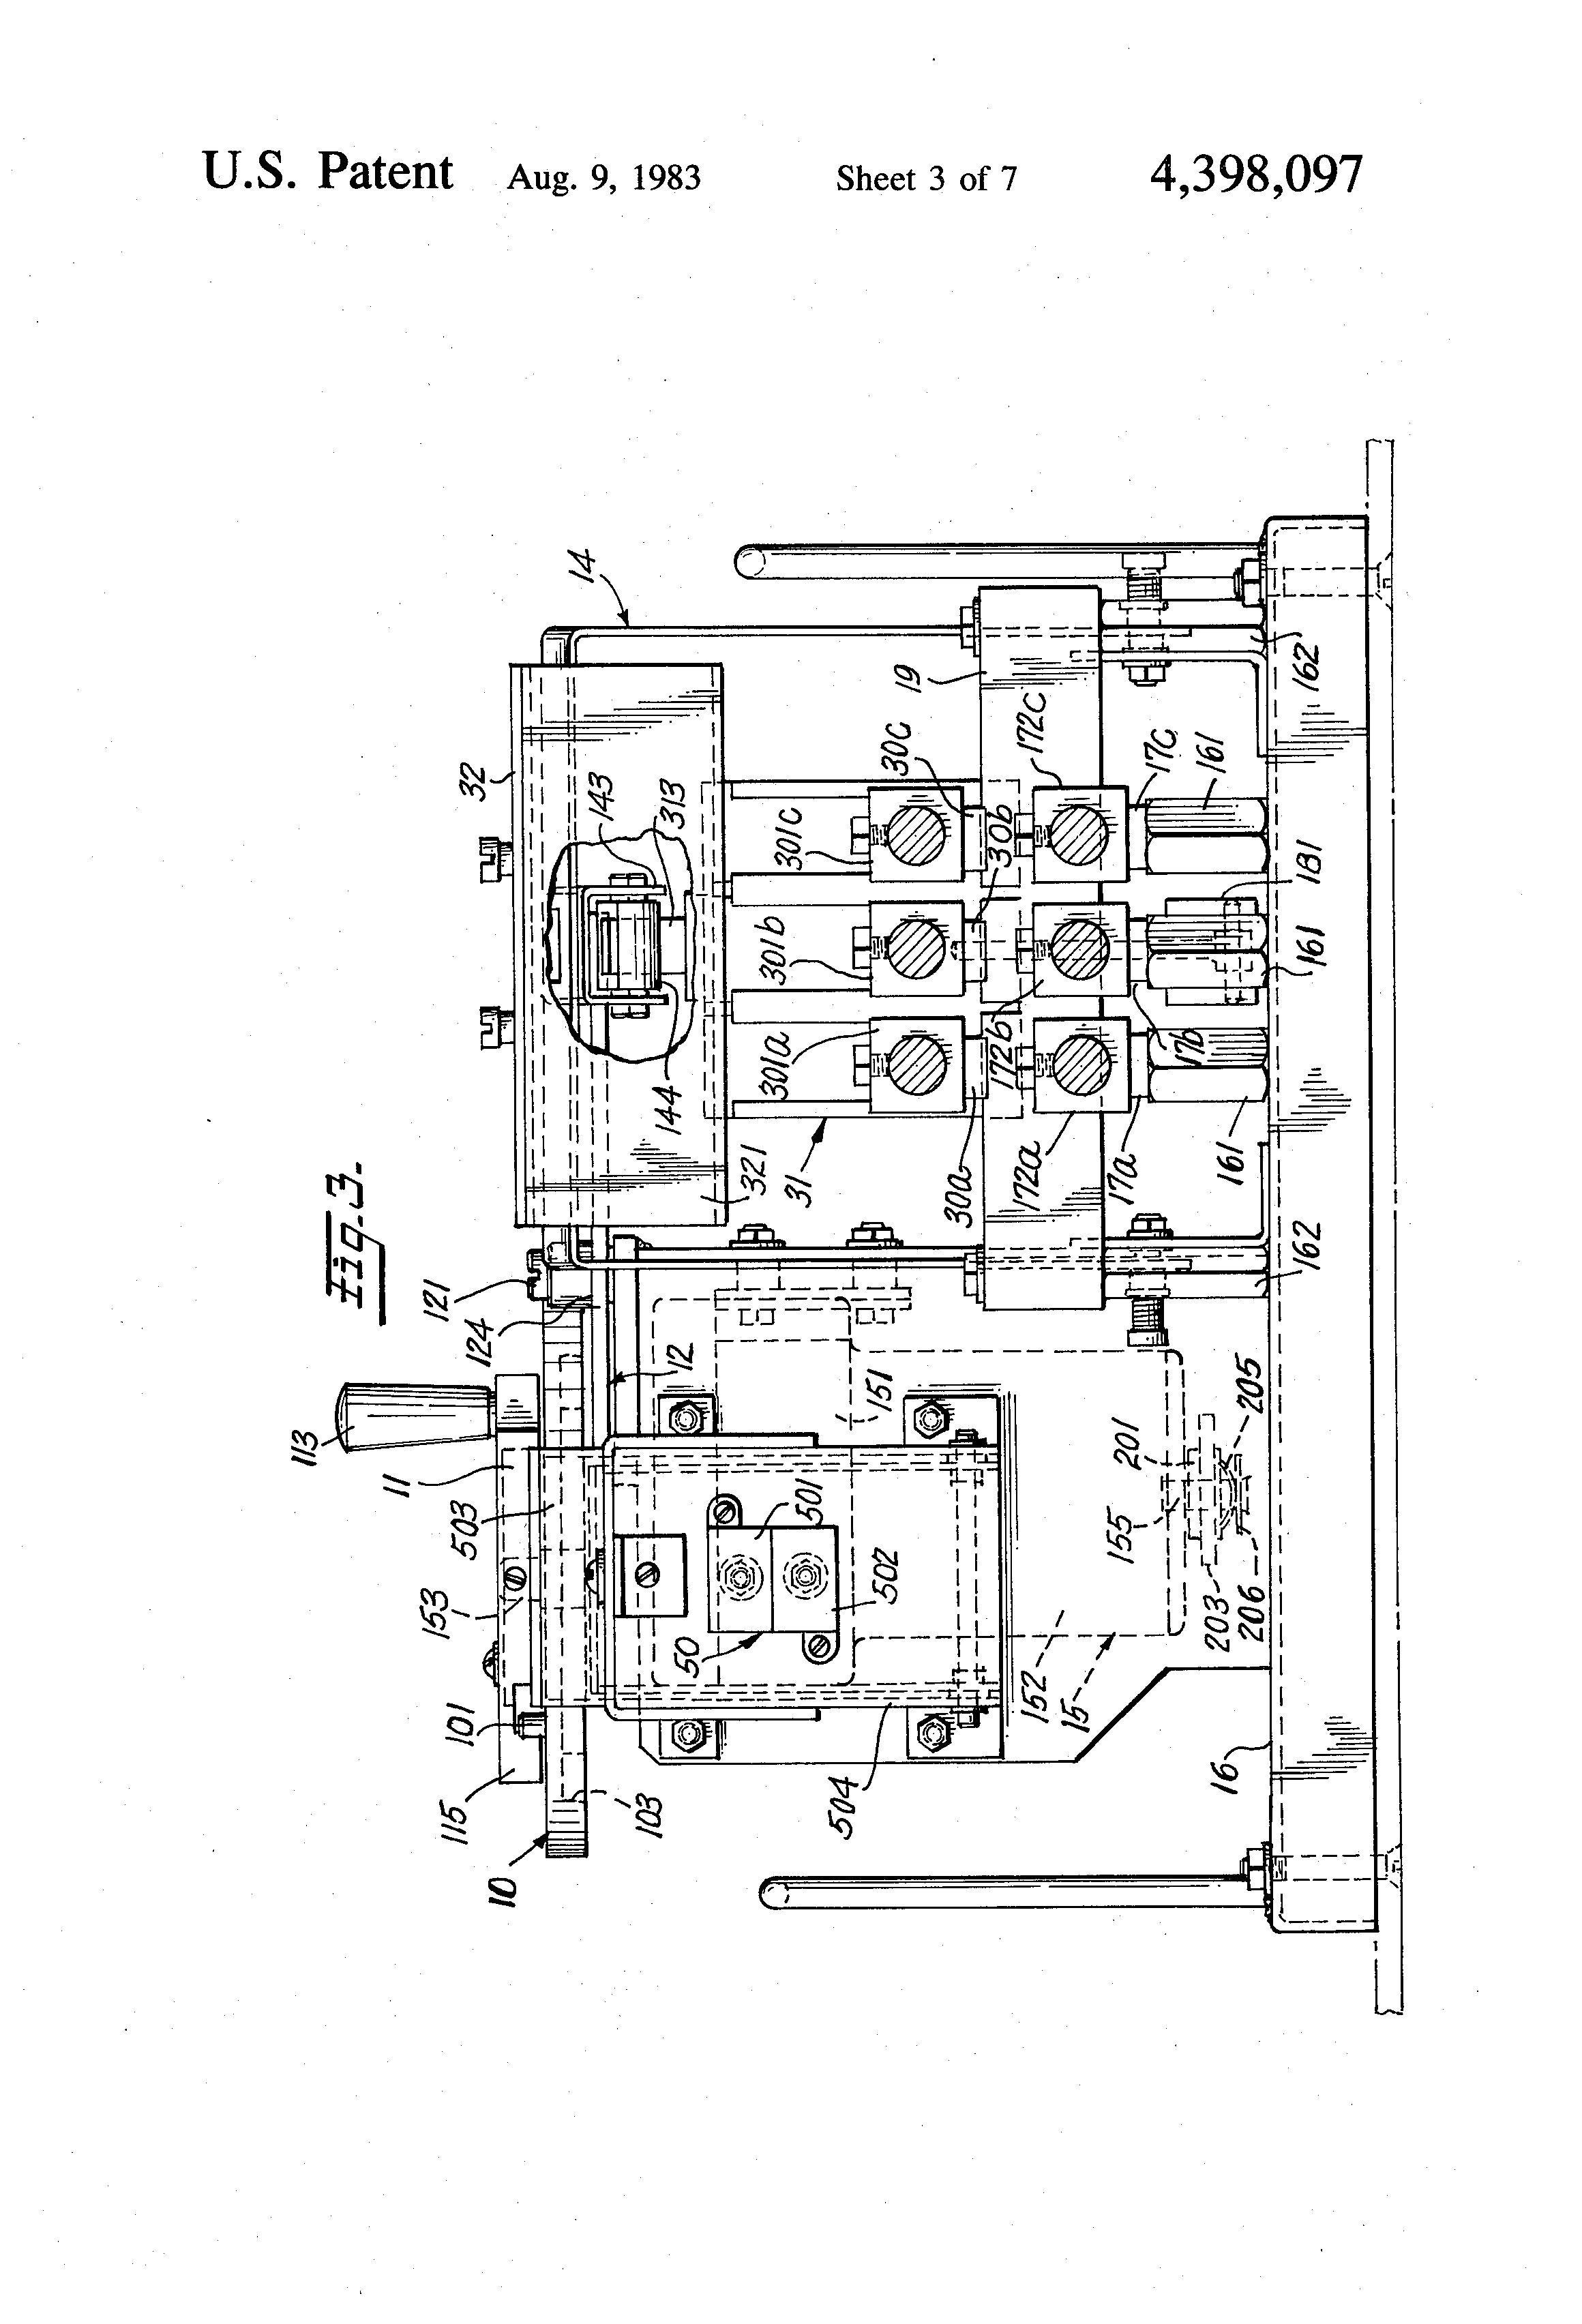 eaton 200 service panel wiring diagram  u2022 wiring and engine